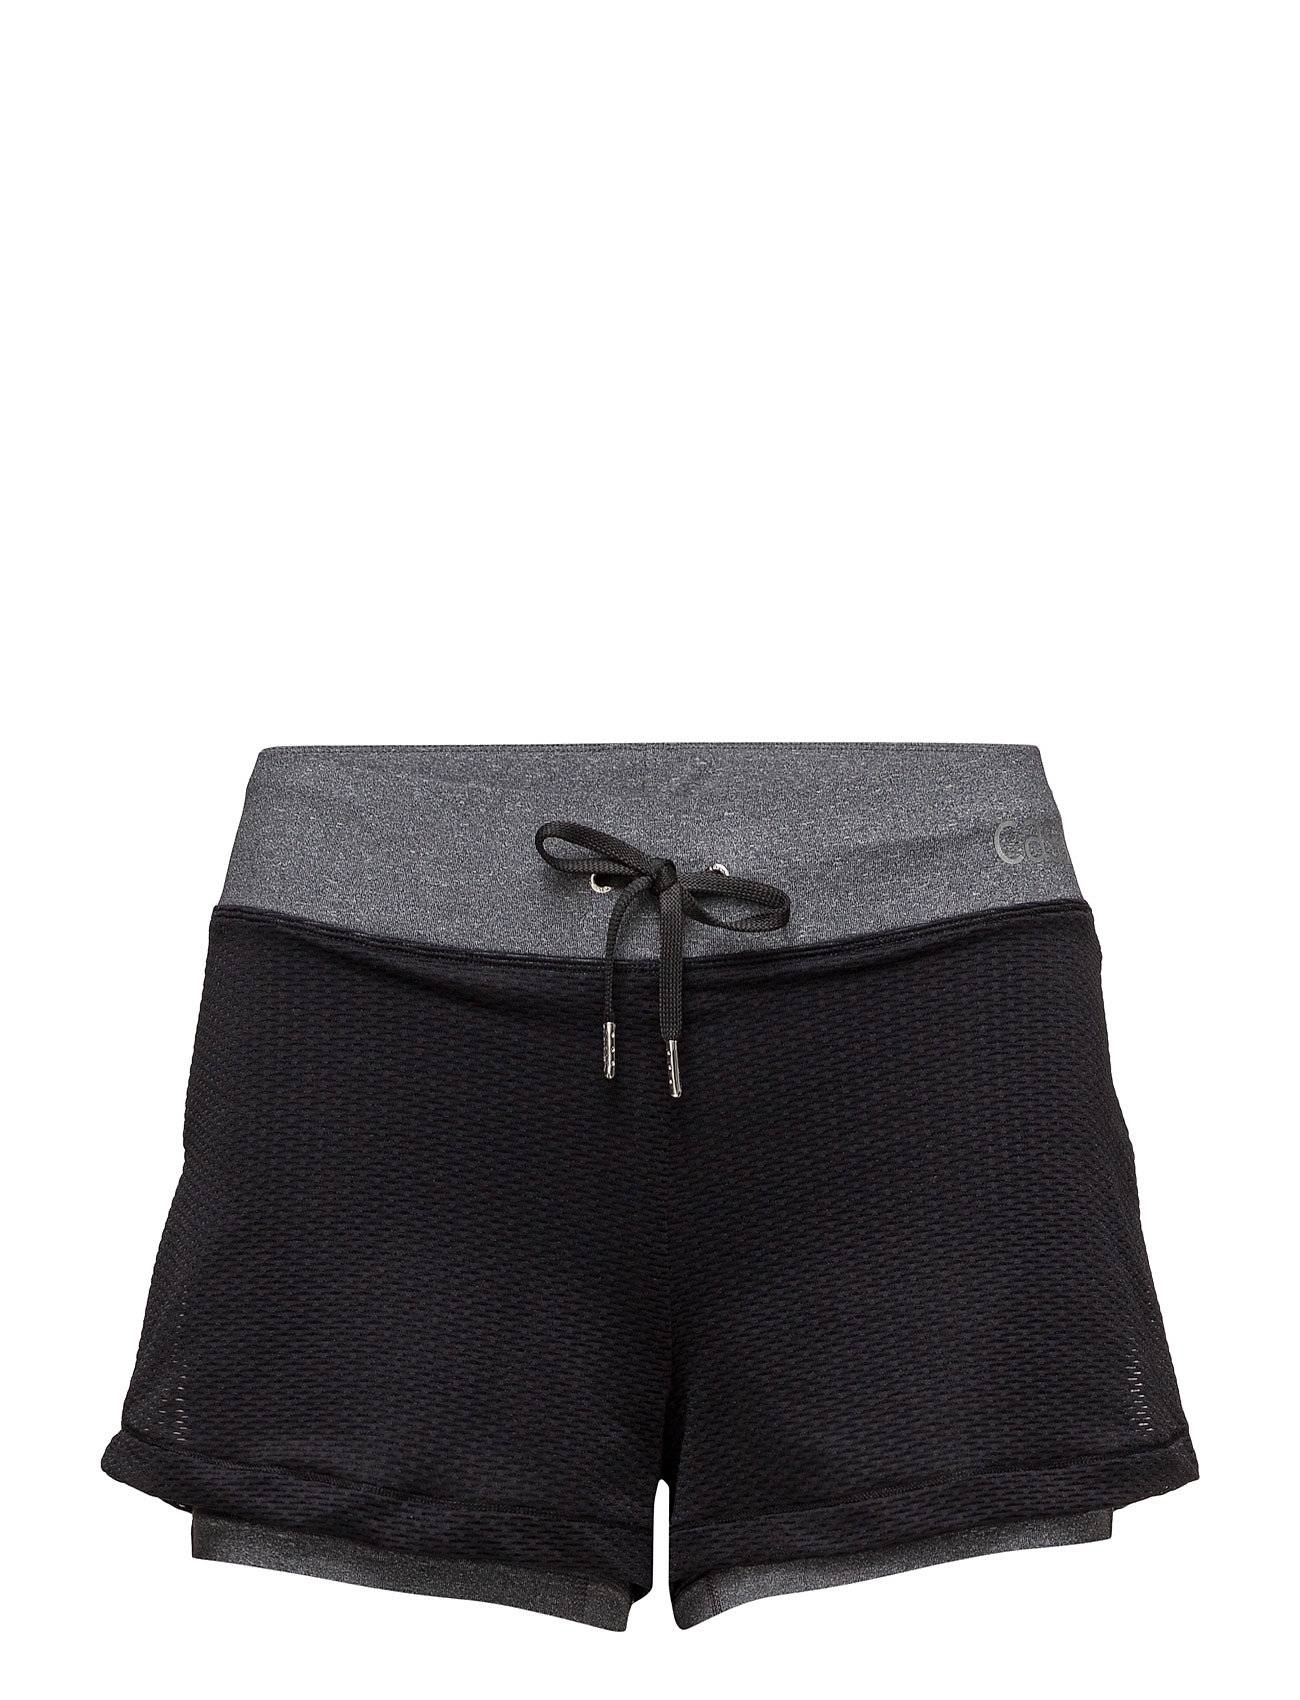 Casall Two-In-One Shorts